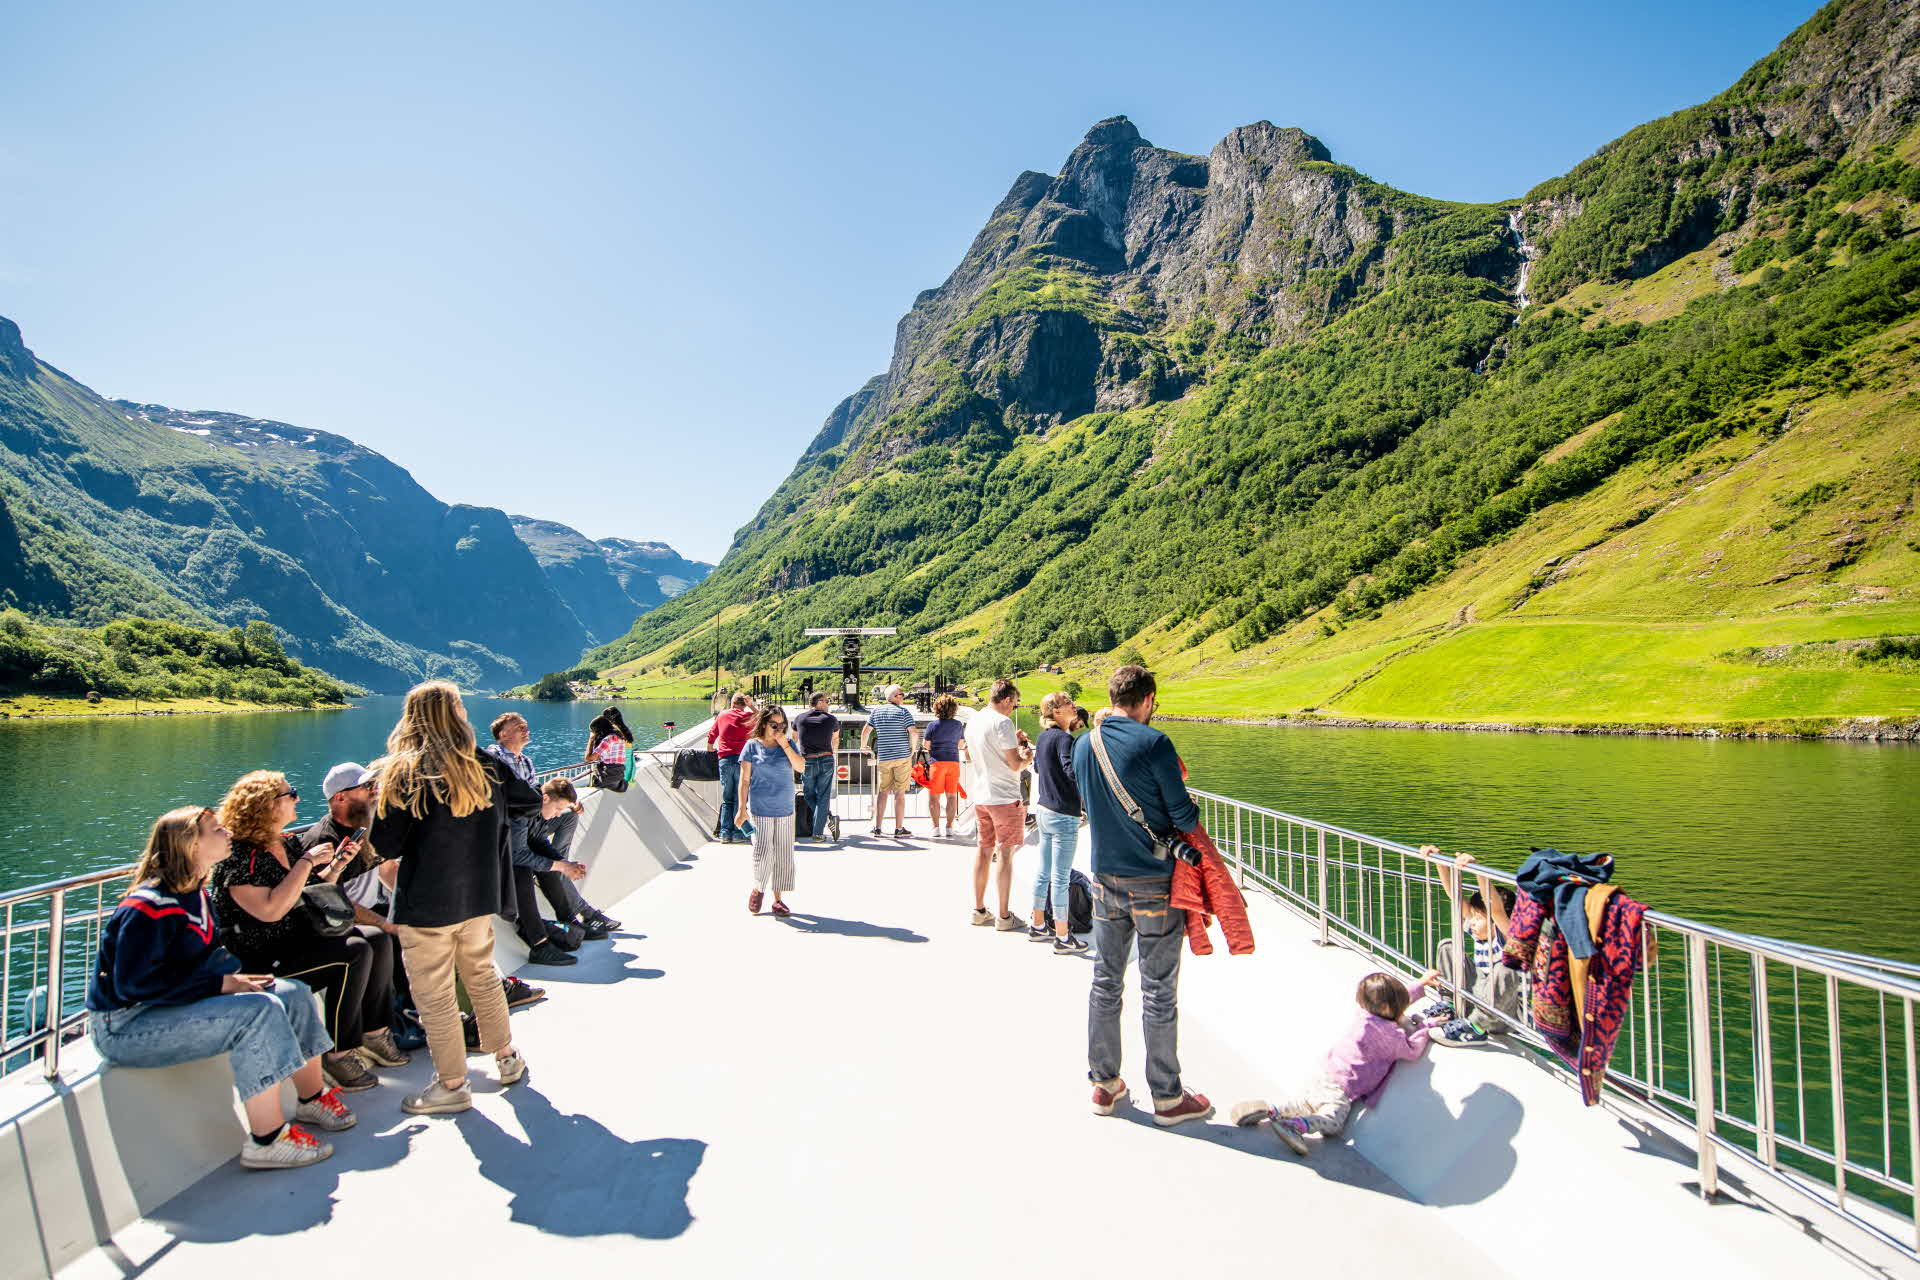 Panorama view of Naeroyfjord on top deck of Future of The Fjords as group of tourists are enjoying the dramatic scenery